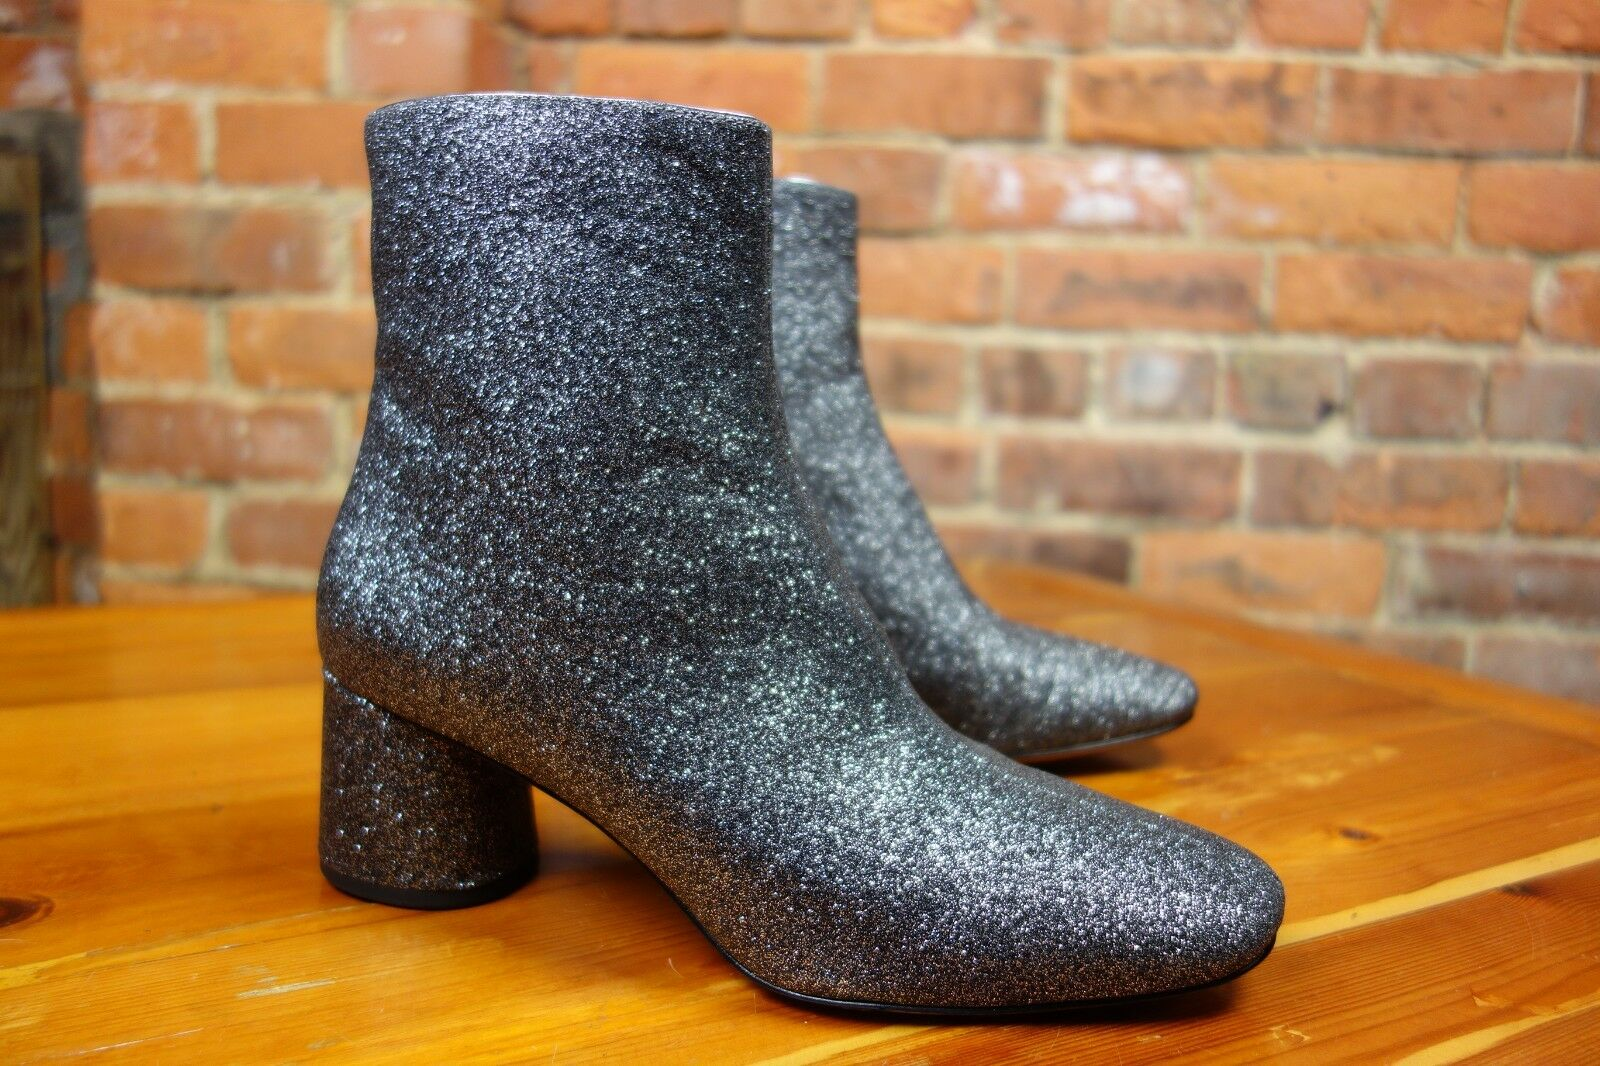 MARC JACOBS simply stunning GLITTER boots. NEW. Original box bag. Cost